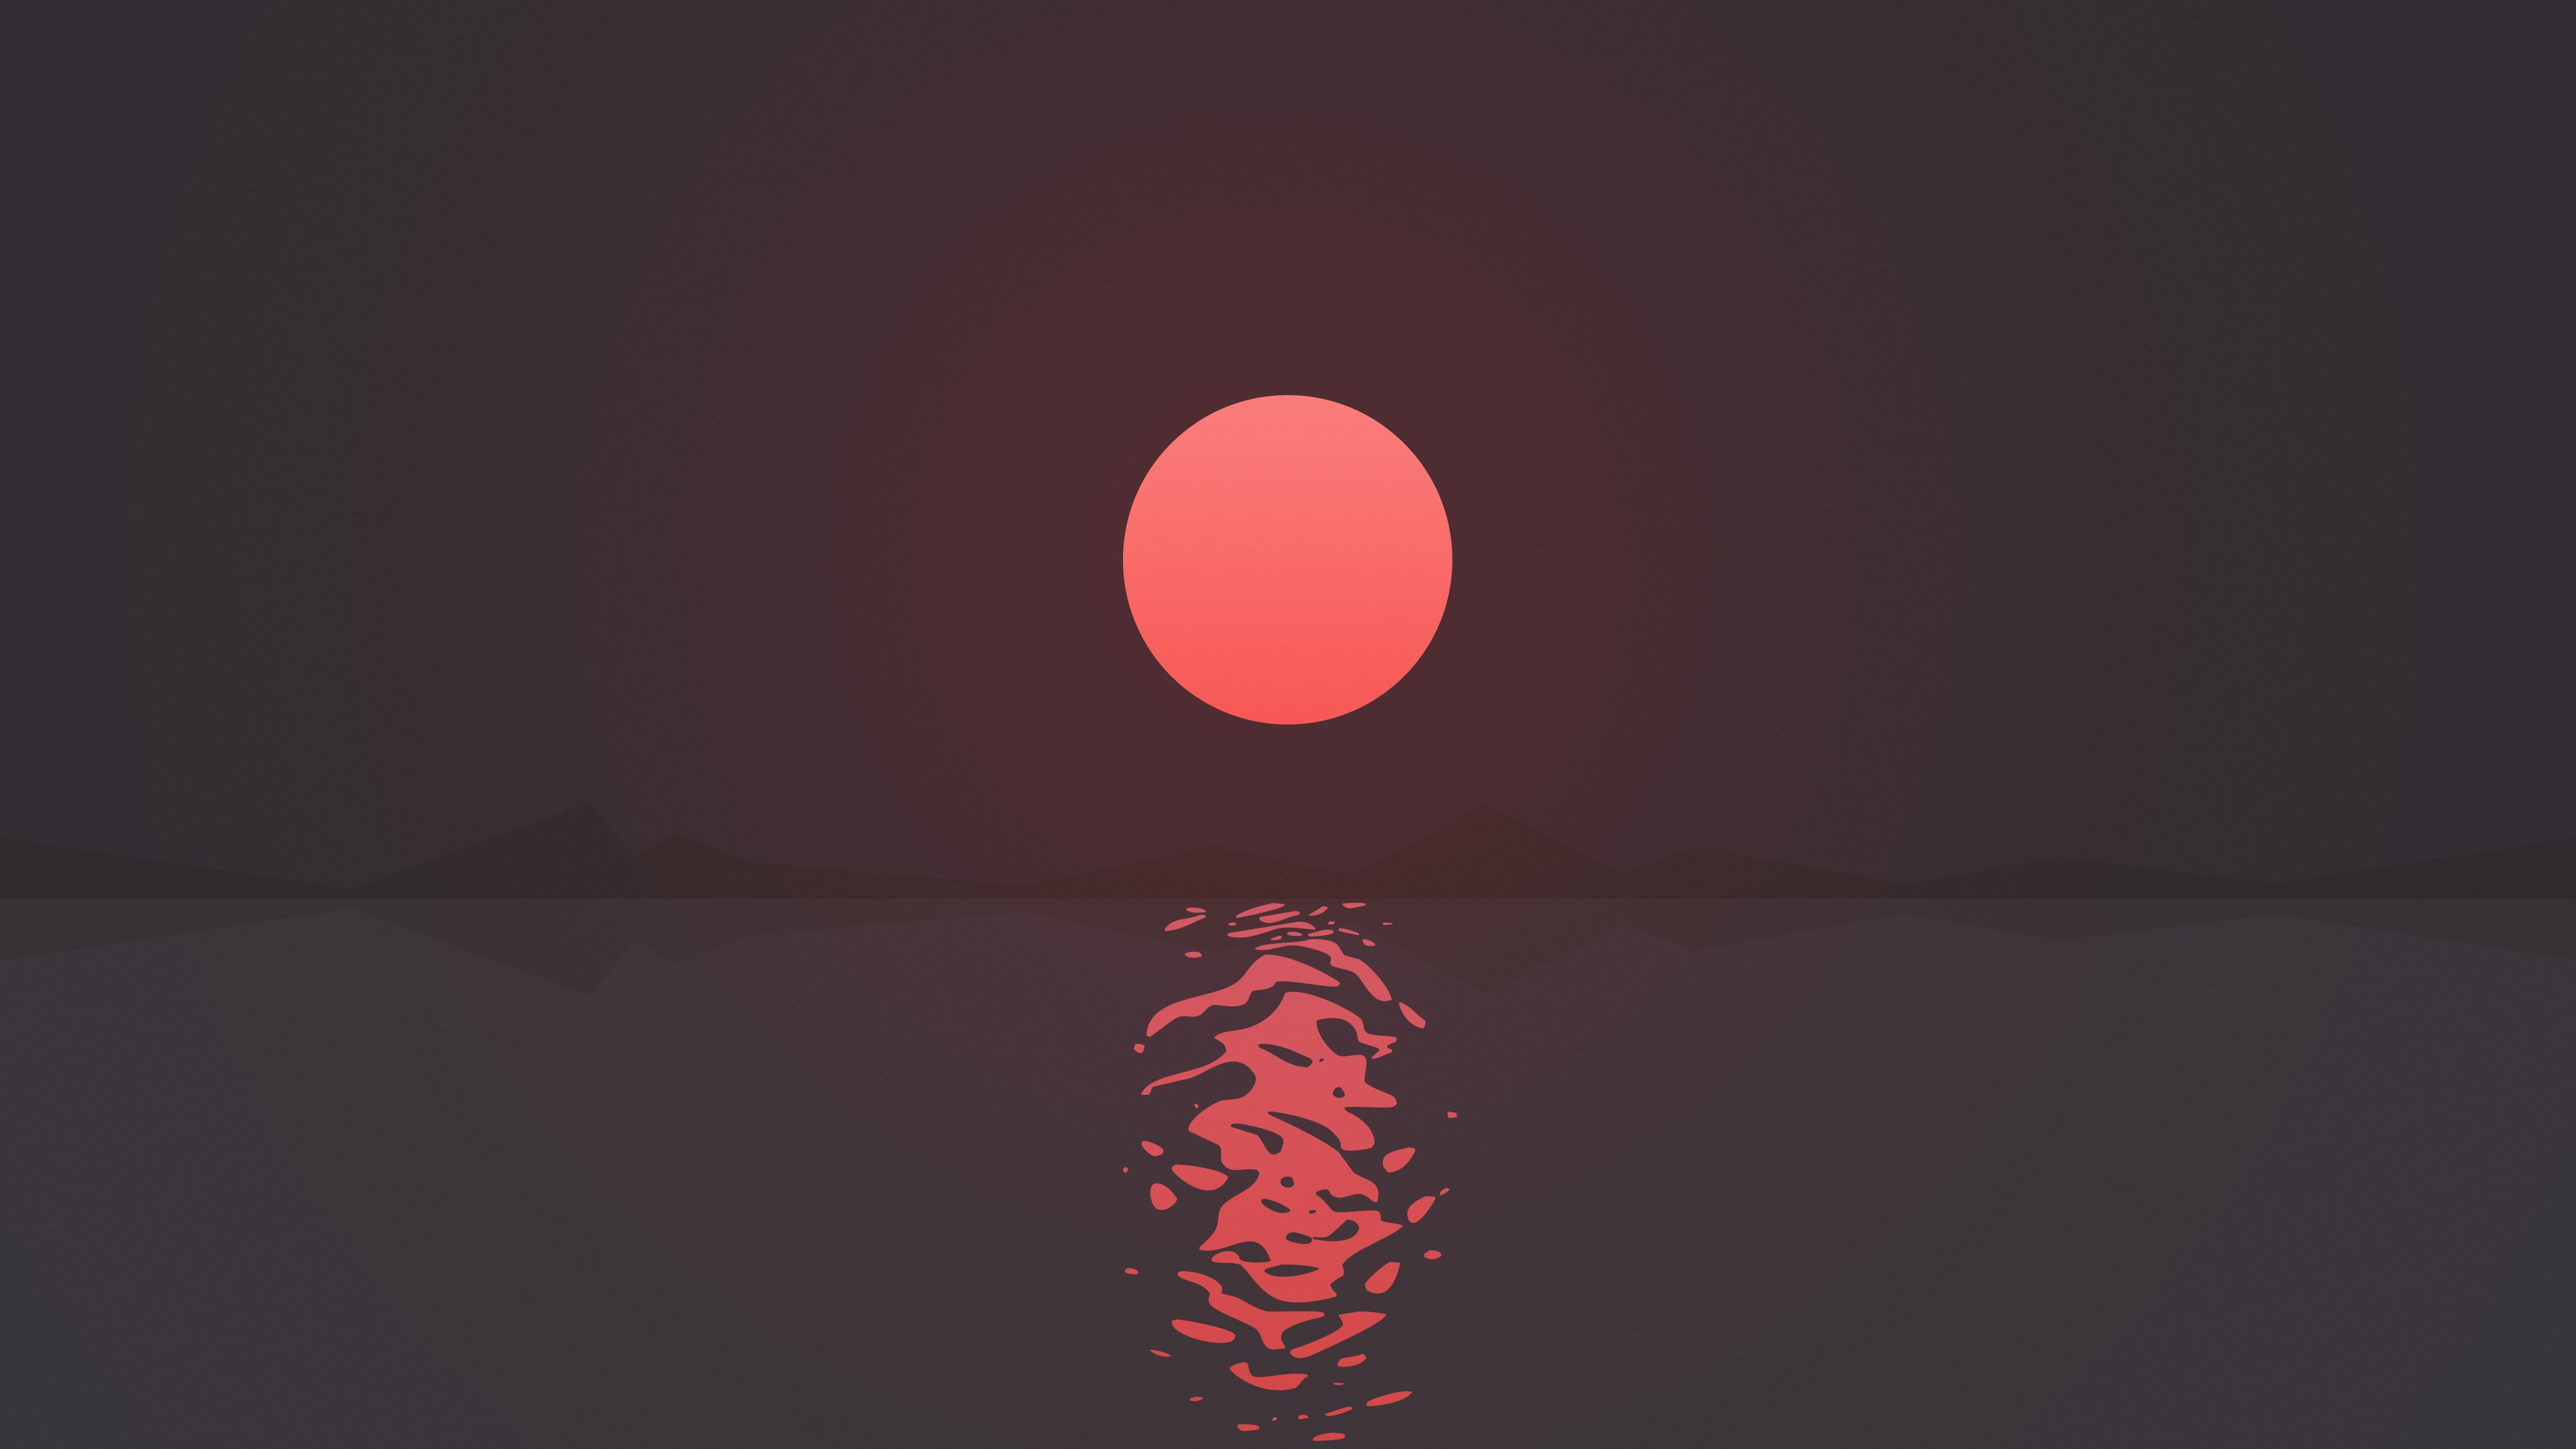 Hd Supreme Wallpaper Iphone X Ripple Sunset 4k Wallpapers Hd Wallpapers Id 17663